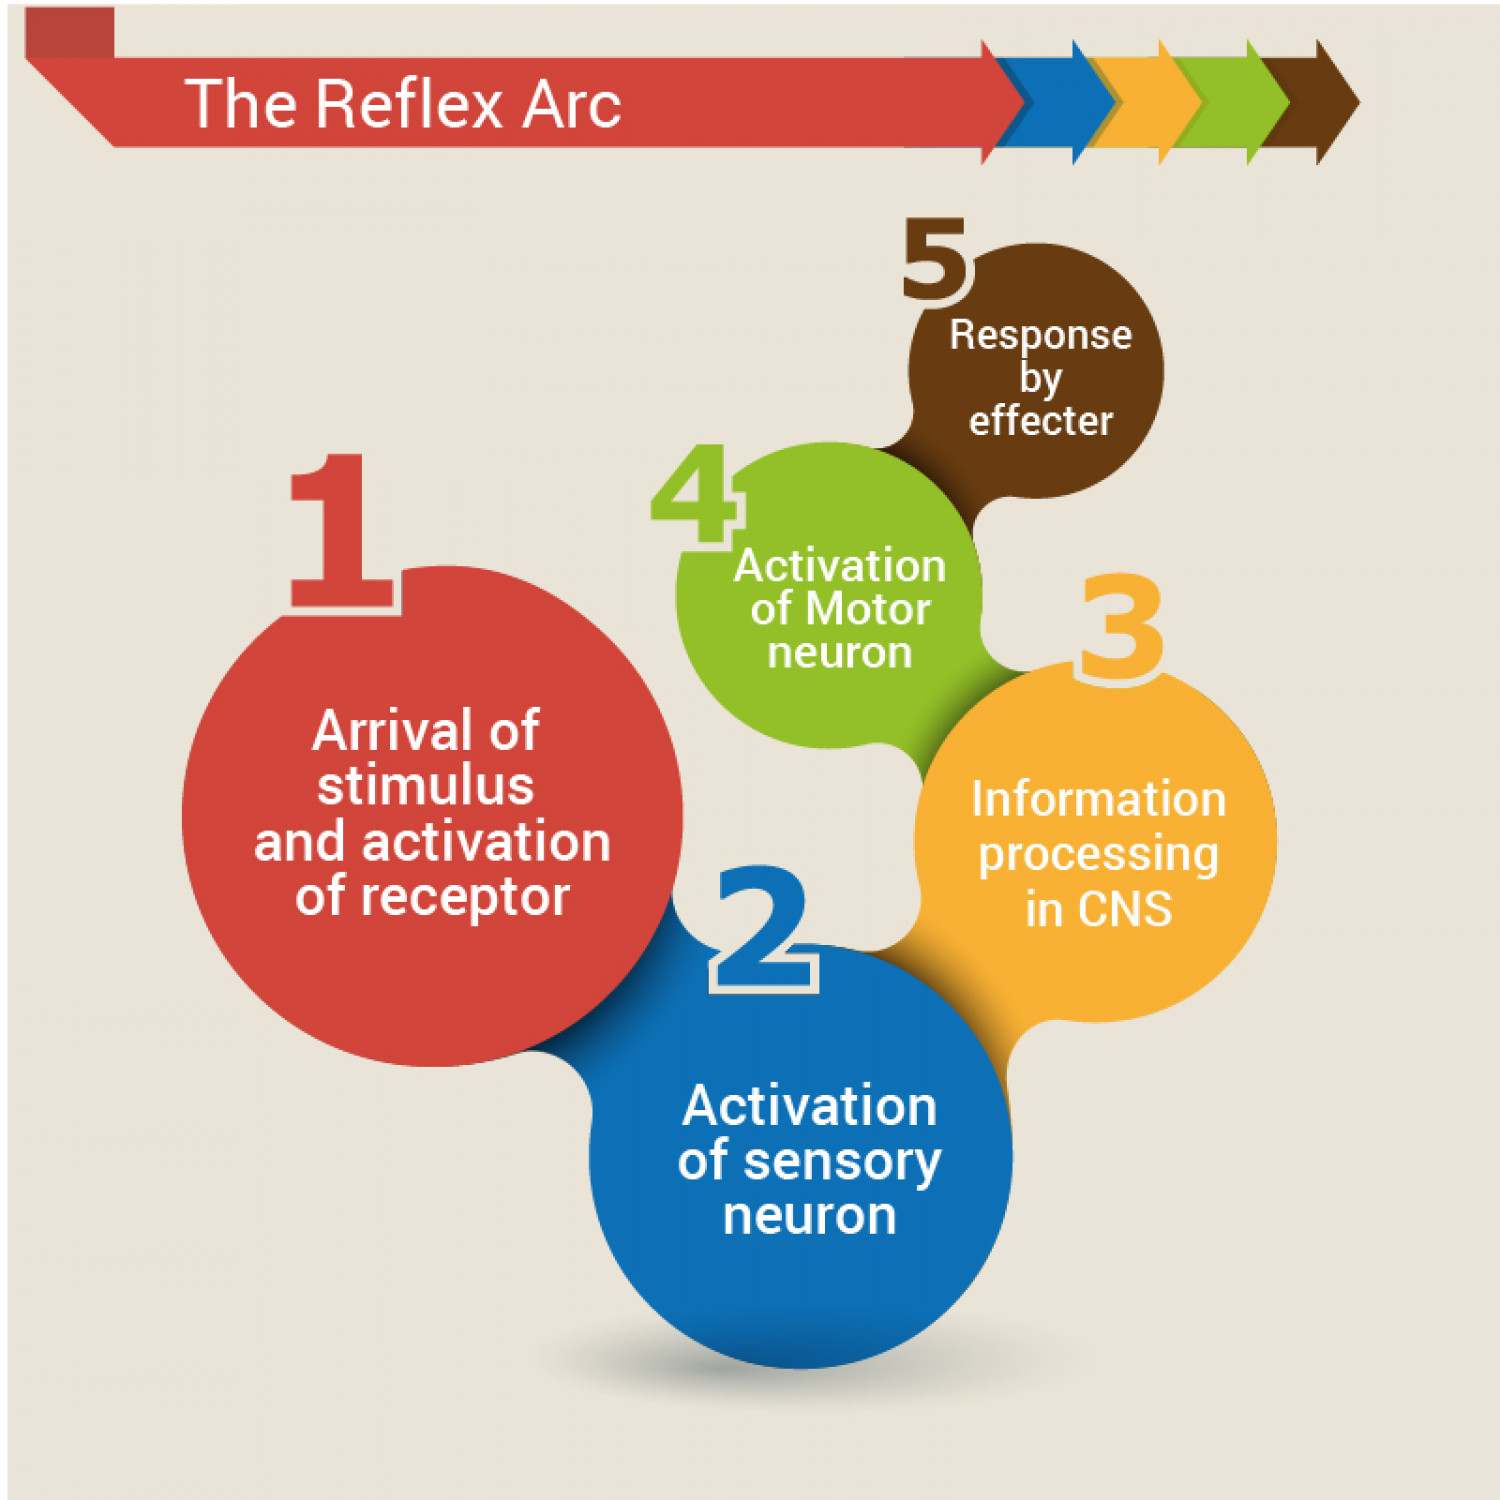 the reflex arc A reflex arc represents a mechanism by which a physiological function is automatically managed or regulated reflex arcs can be found throughout the body, ranging from skeletal muscles to.